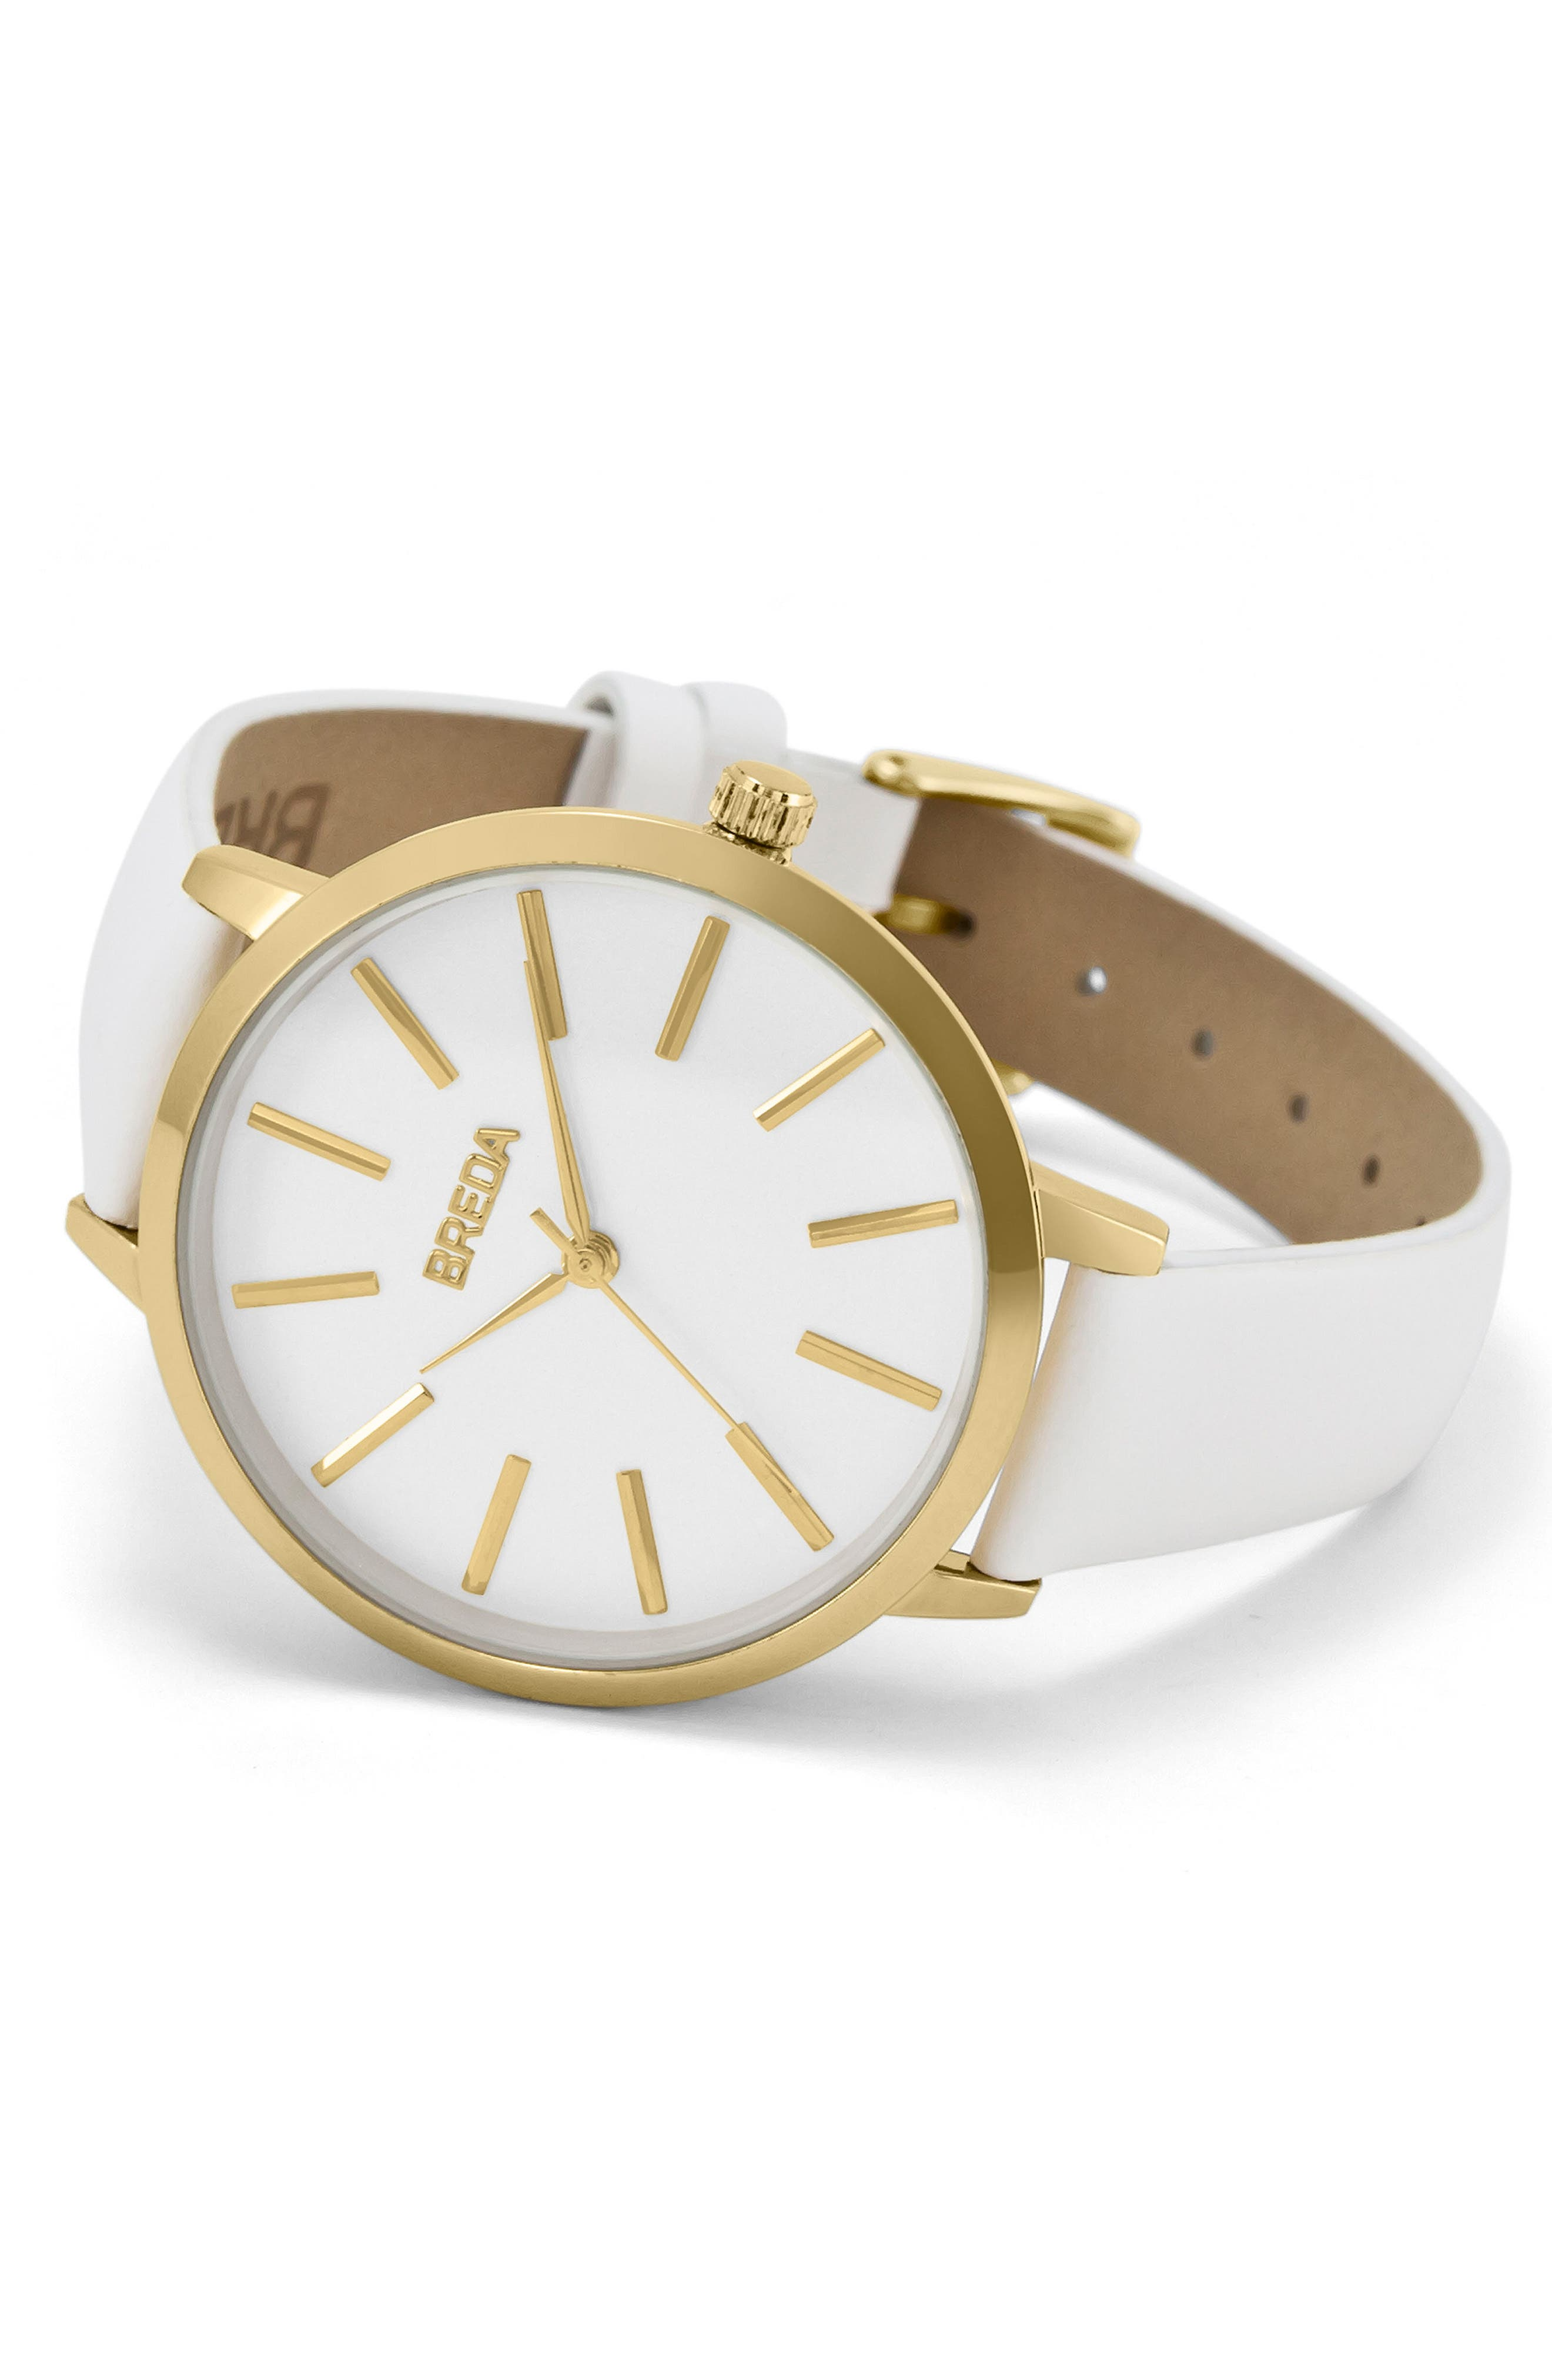 Joule Round Leather Strap Watch, 37mm,                             Alternate thumbnail 2, color,                             White/ Gold